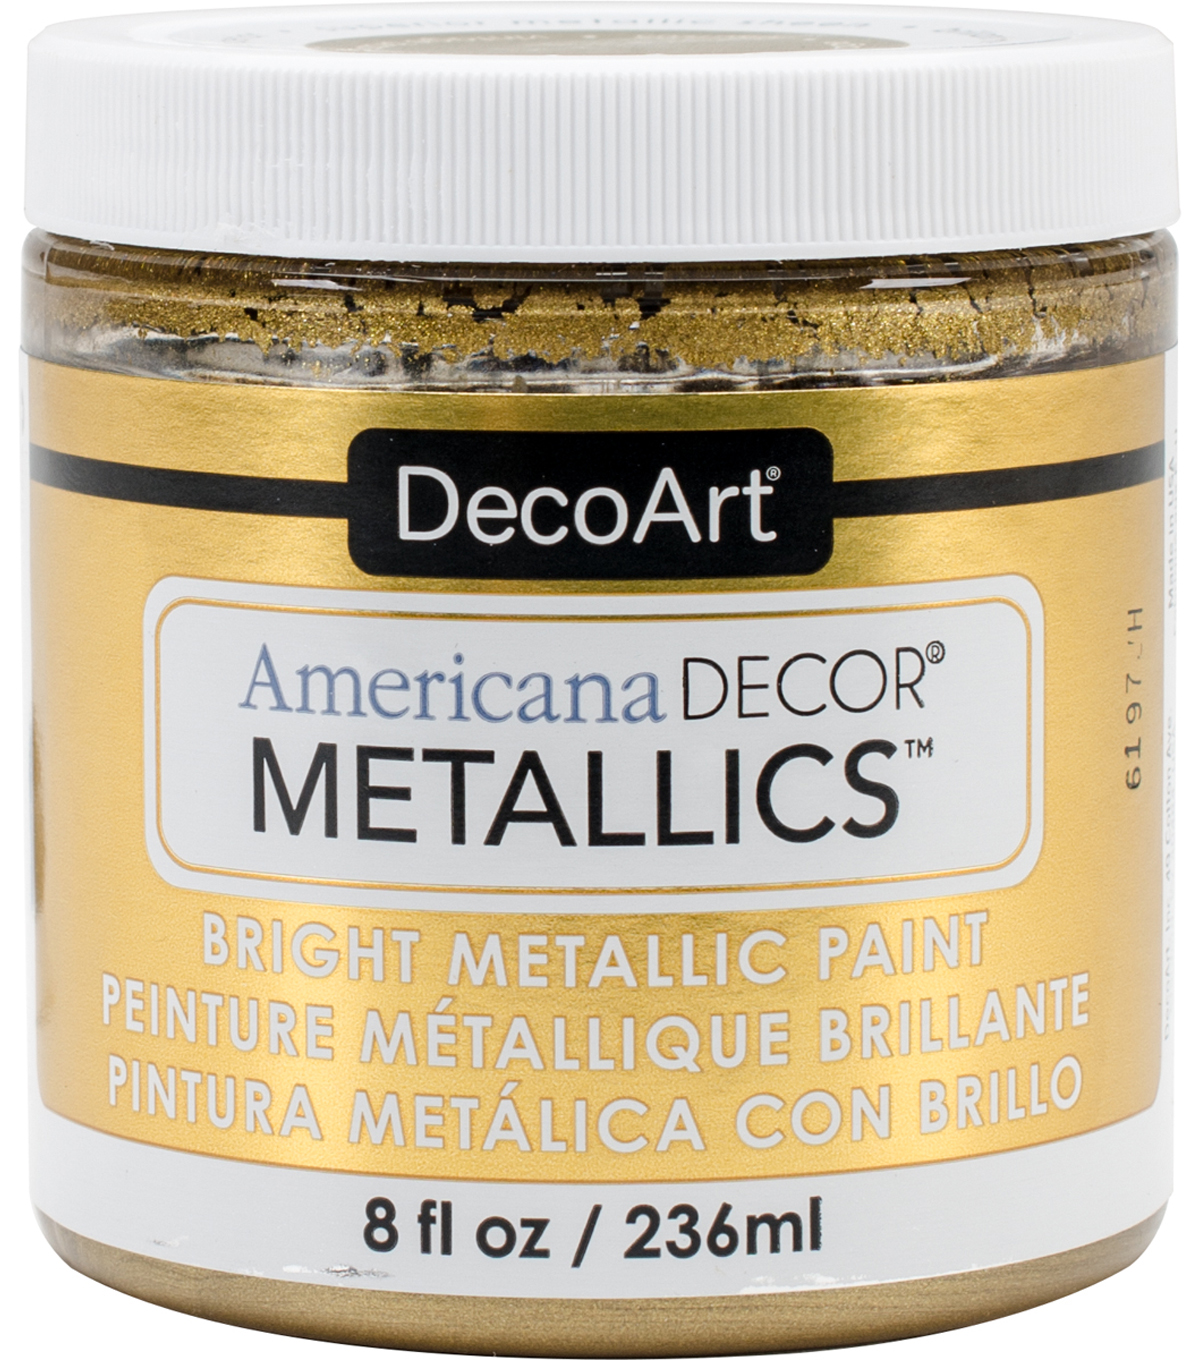 DecoArt Americana Decor Metallics 8oz Paint, Champagne Gold